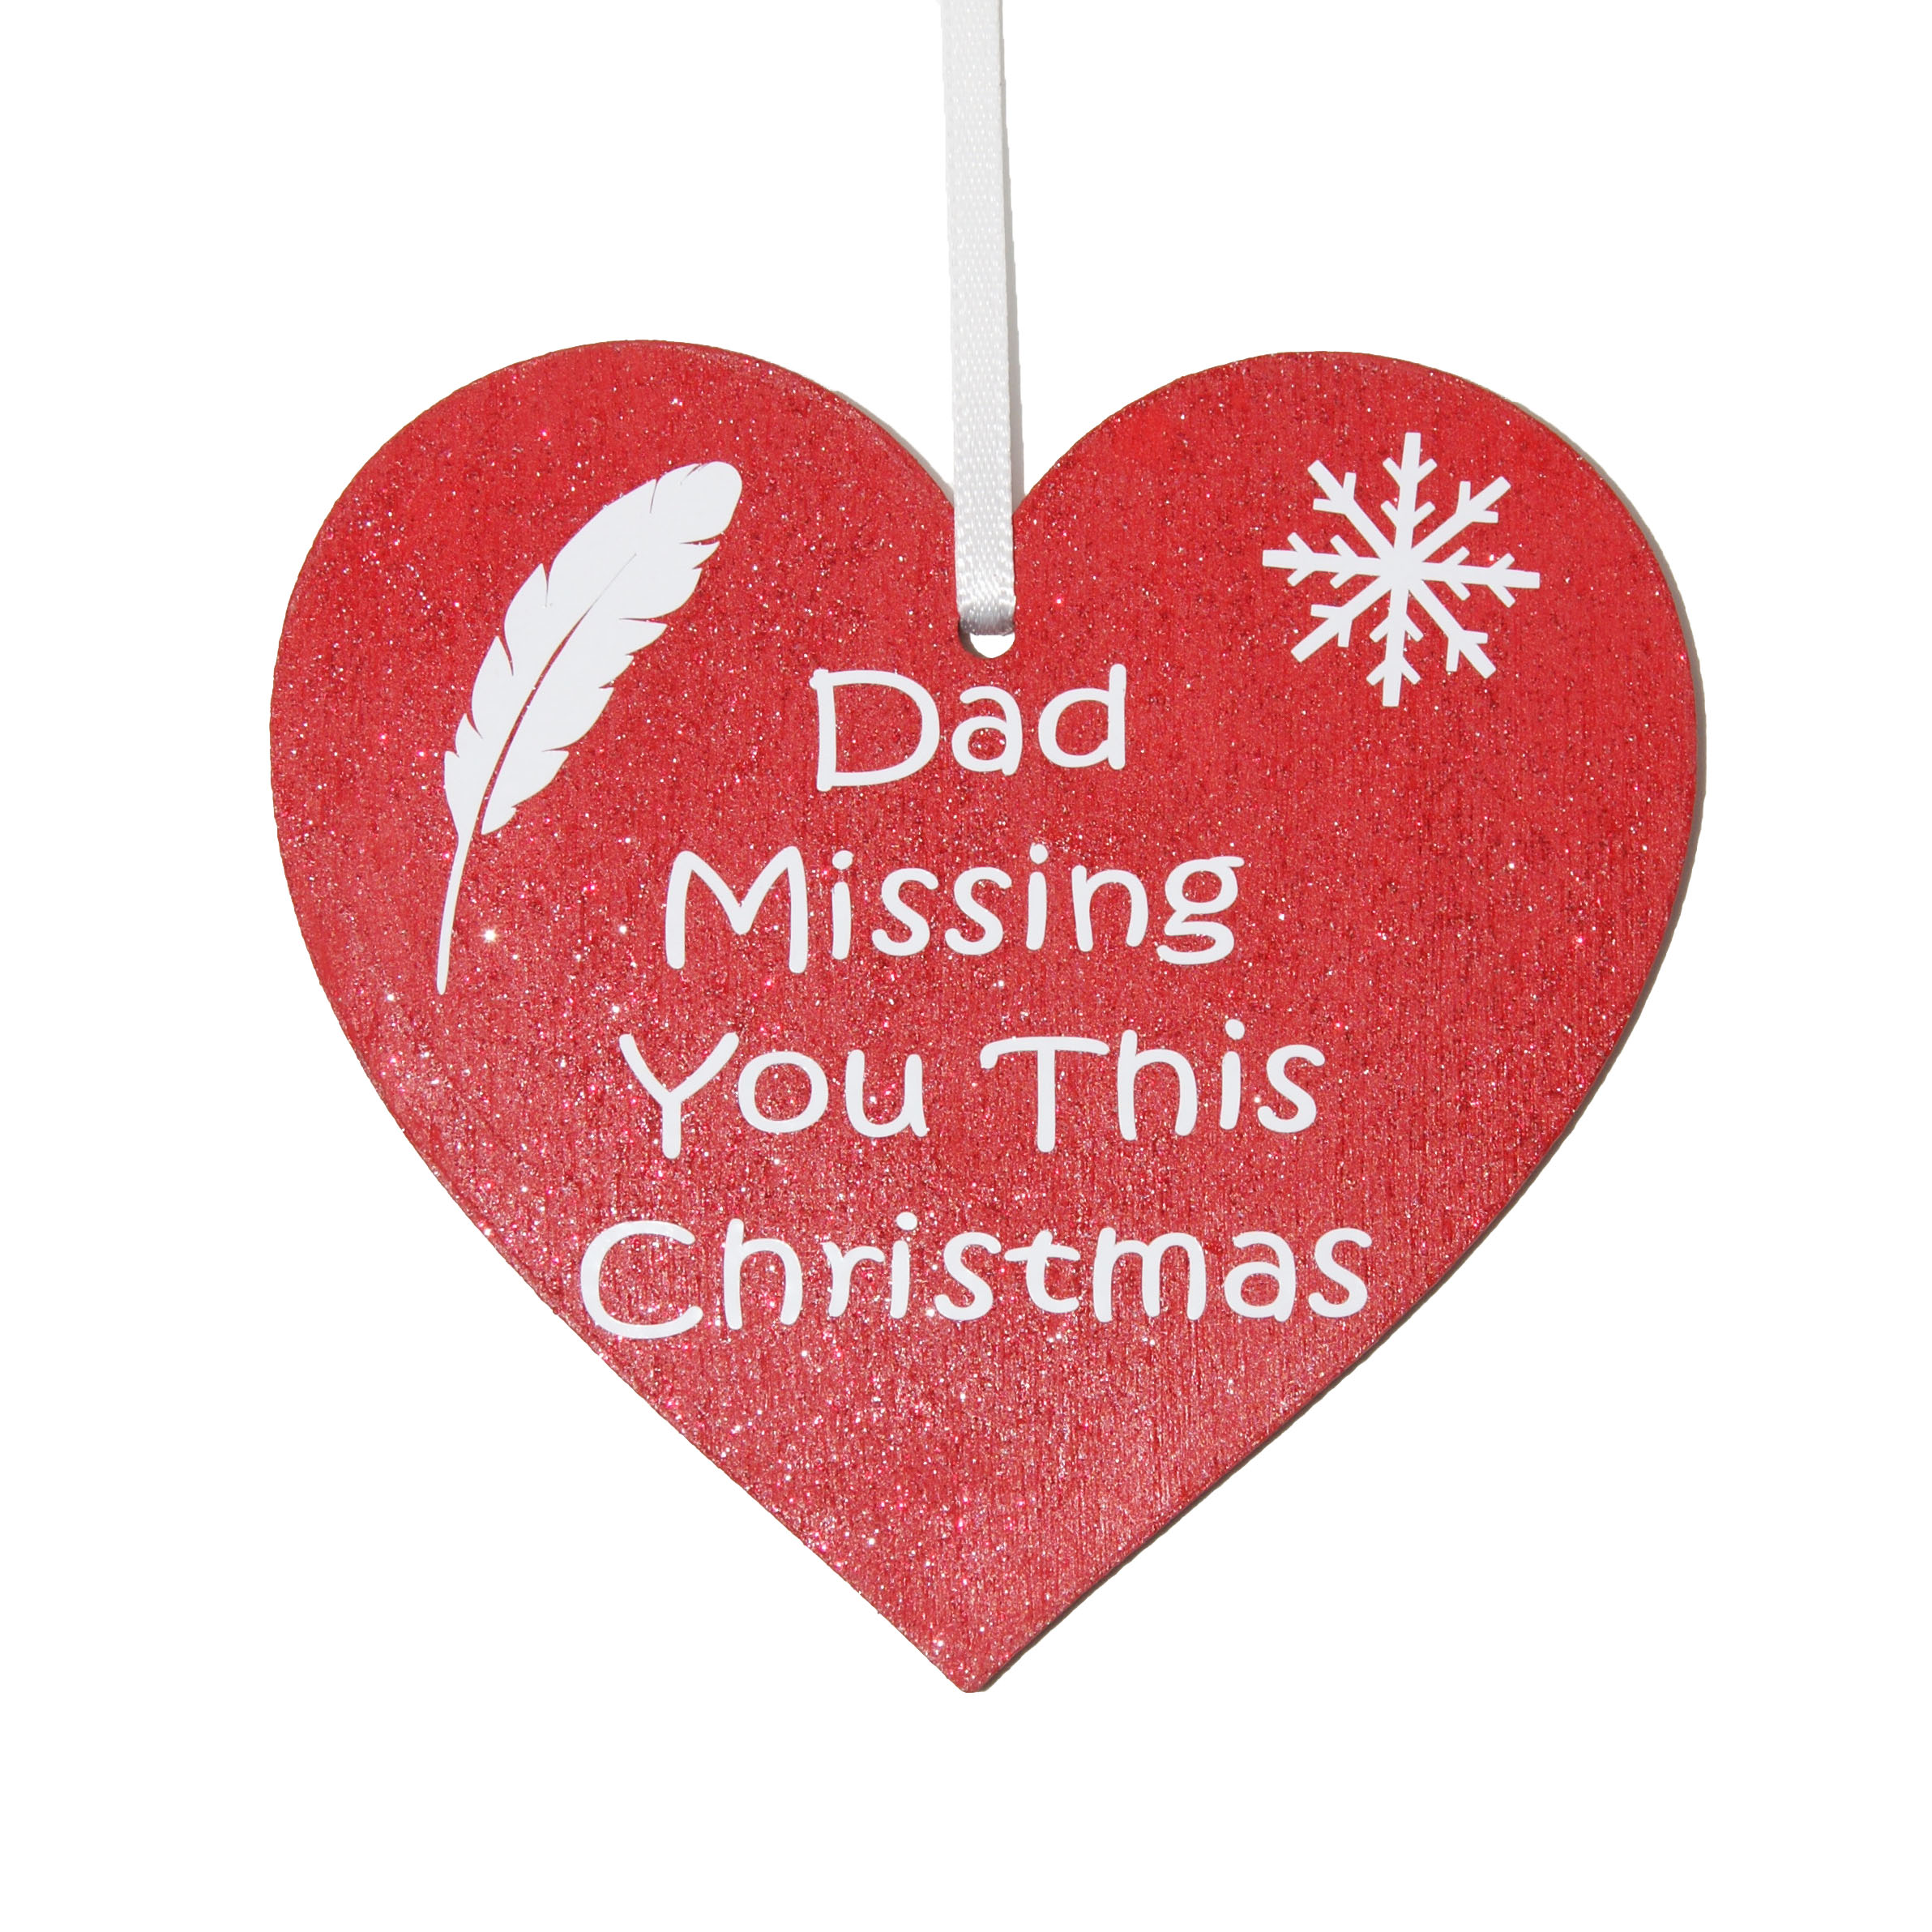 dad missing you this christmas red heart tree decoration